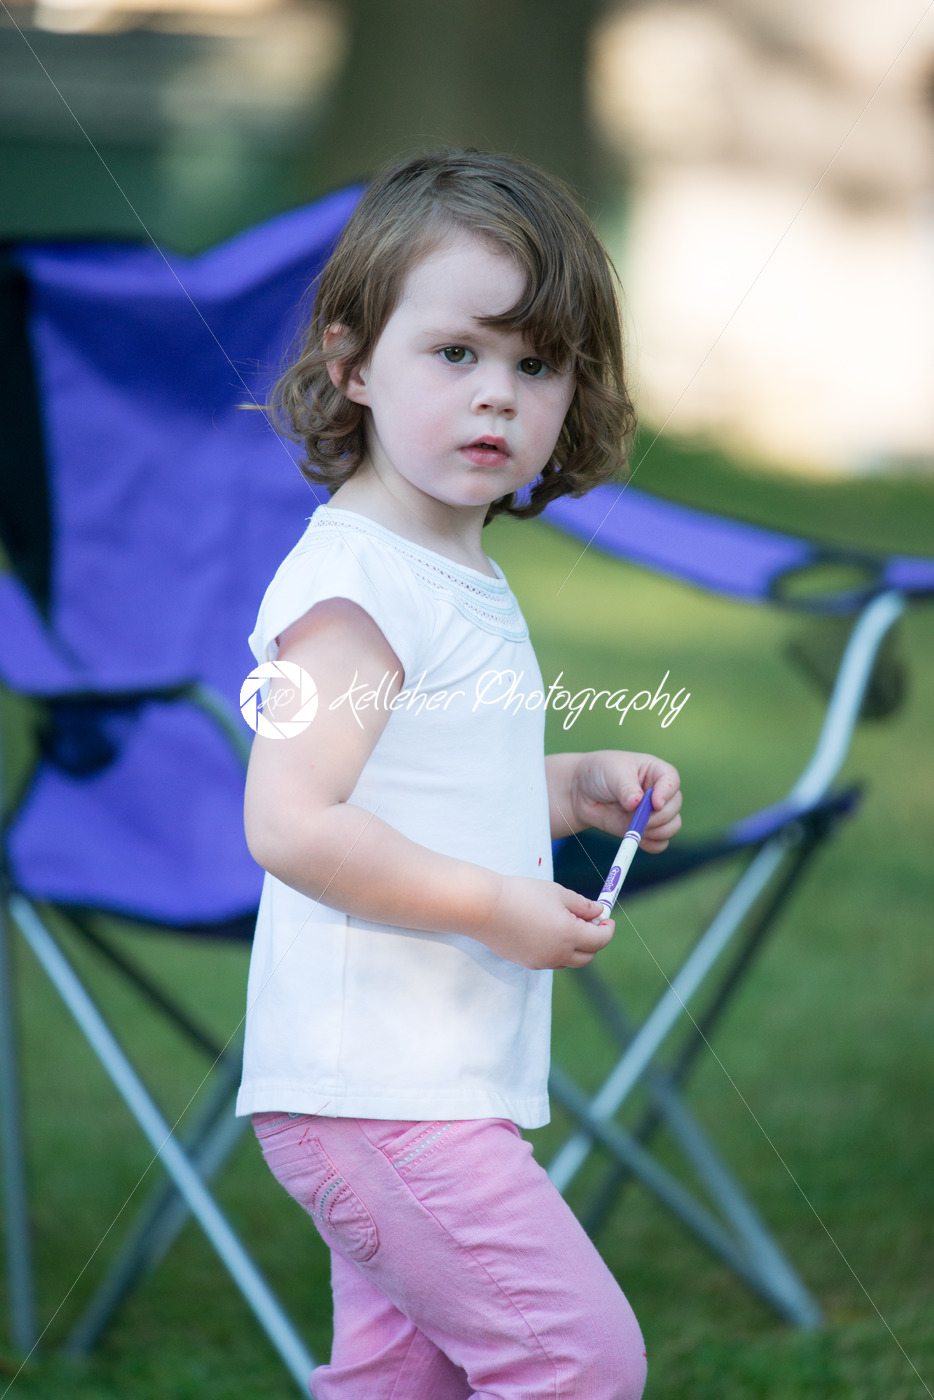 Young girl outside coloring with markers - Kelleher Photography Store